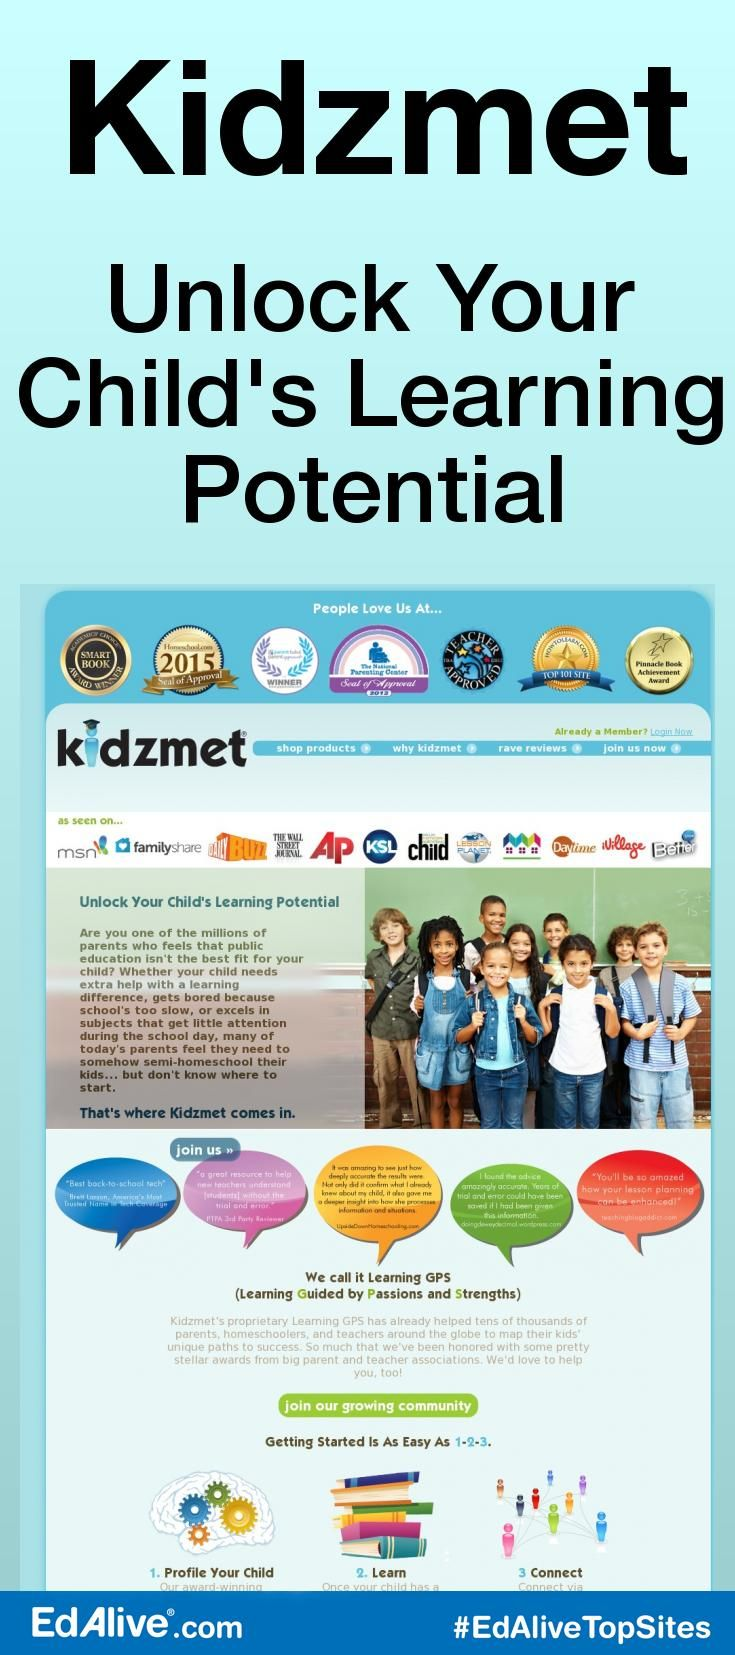 Kidzmet | Unlock Your Child's Learning Potential | A Learning GPS (Guided by Passions and Strengths) that helps parents have the tools to learn how to speak in their kids' learning languages. Kidzmet aims to help parents, teachers, tutors & coaches understand how to make learning FUN for each unique child. #CrossCurricular #EdAliveTopSites